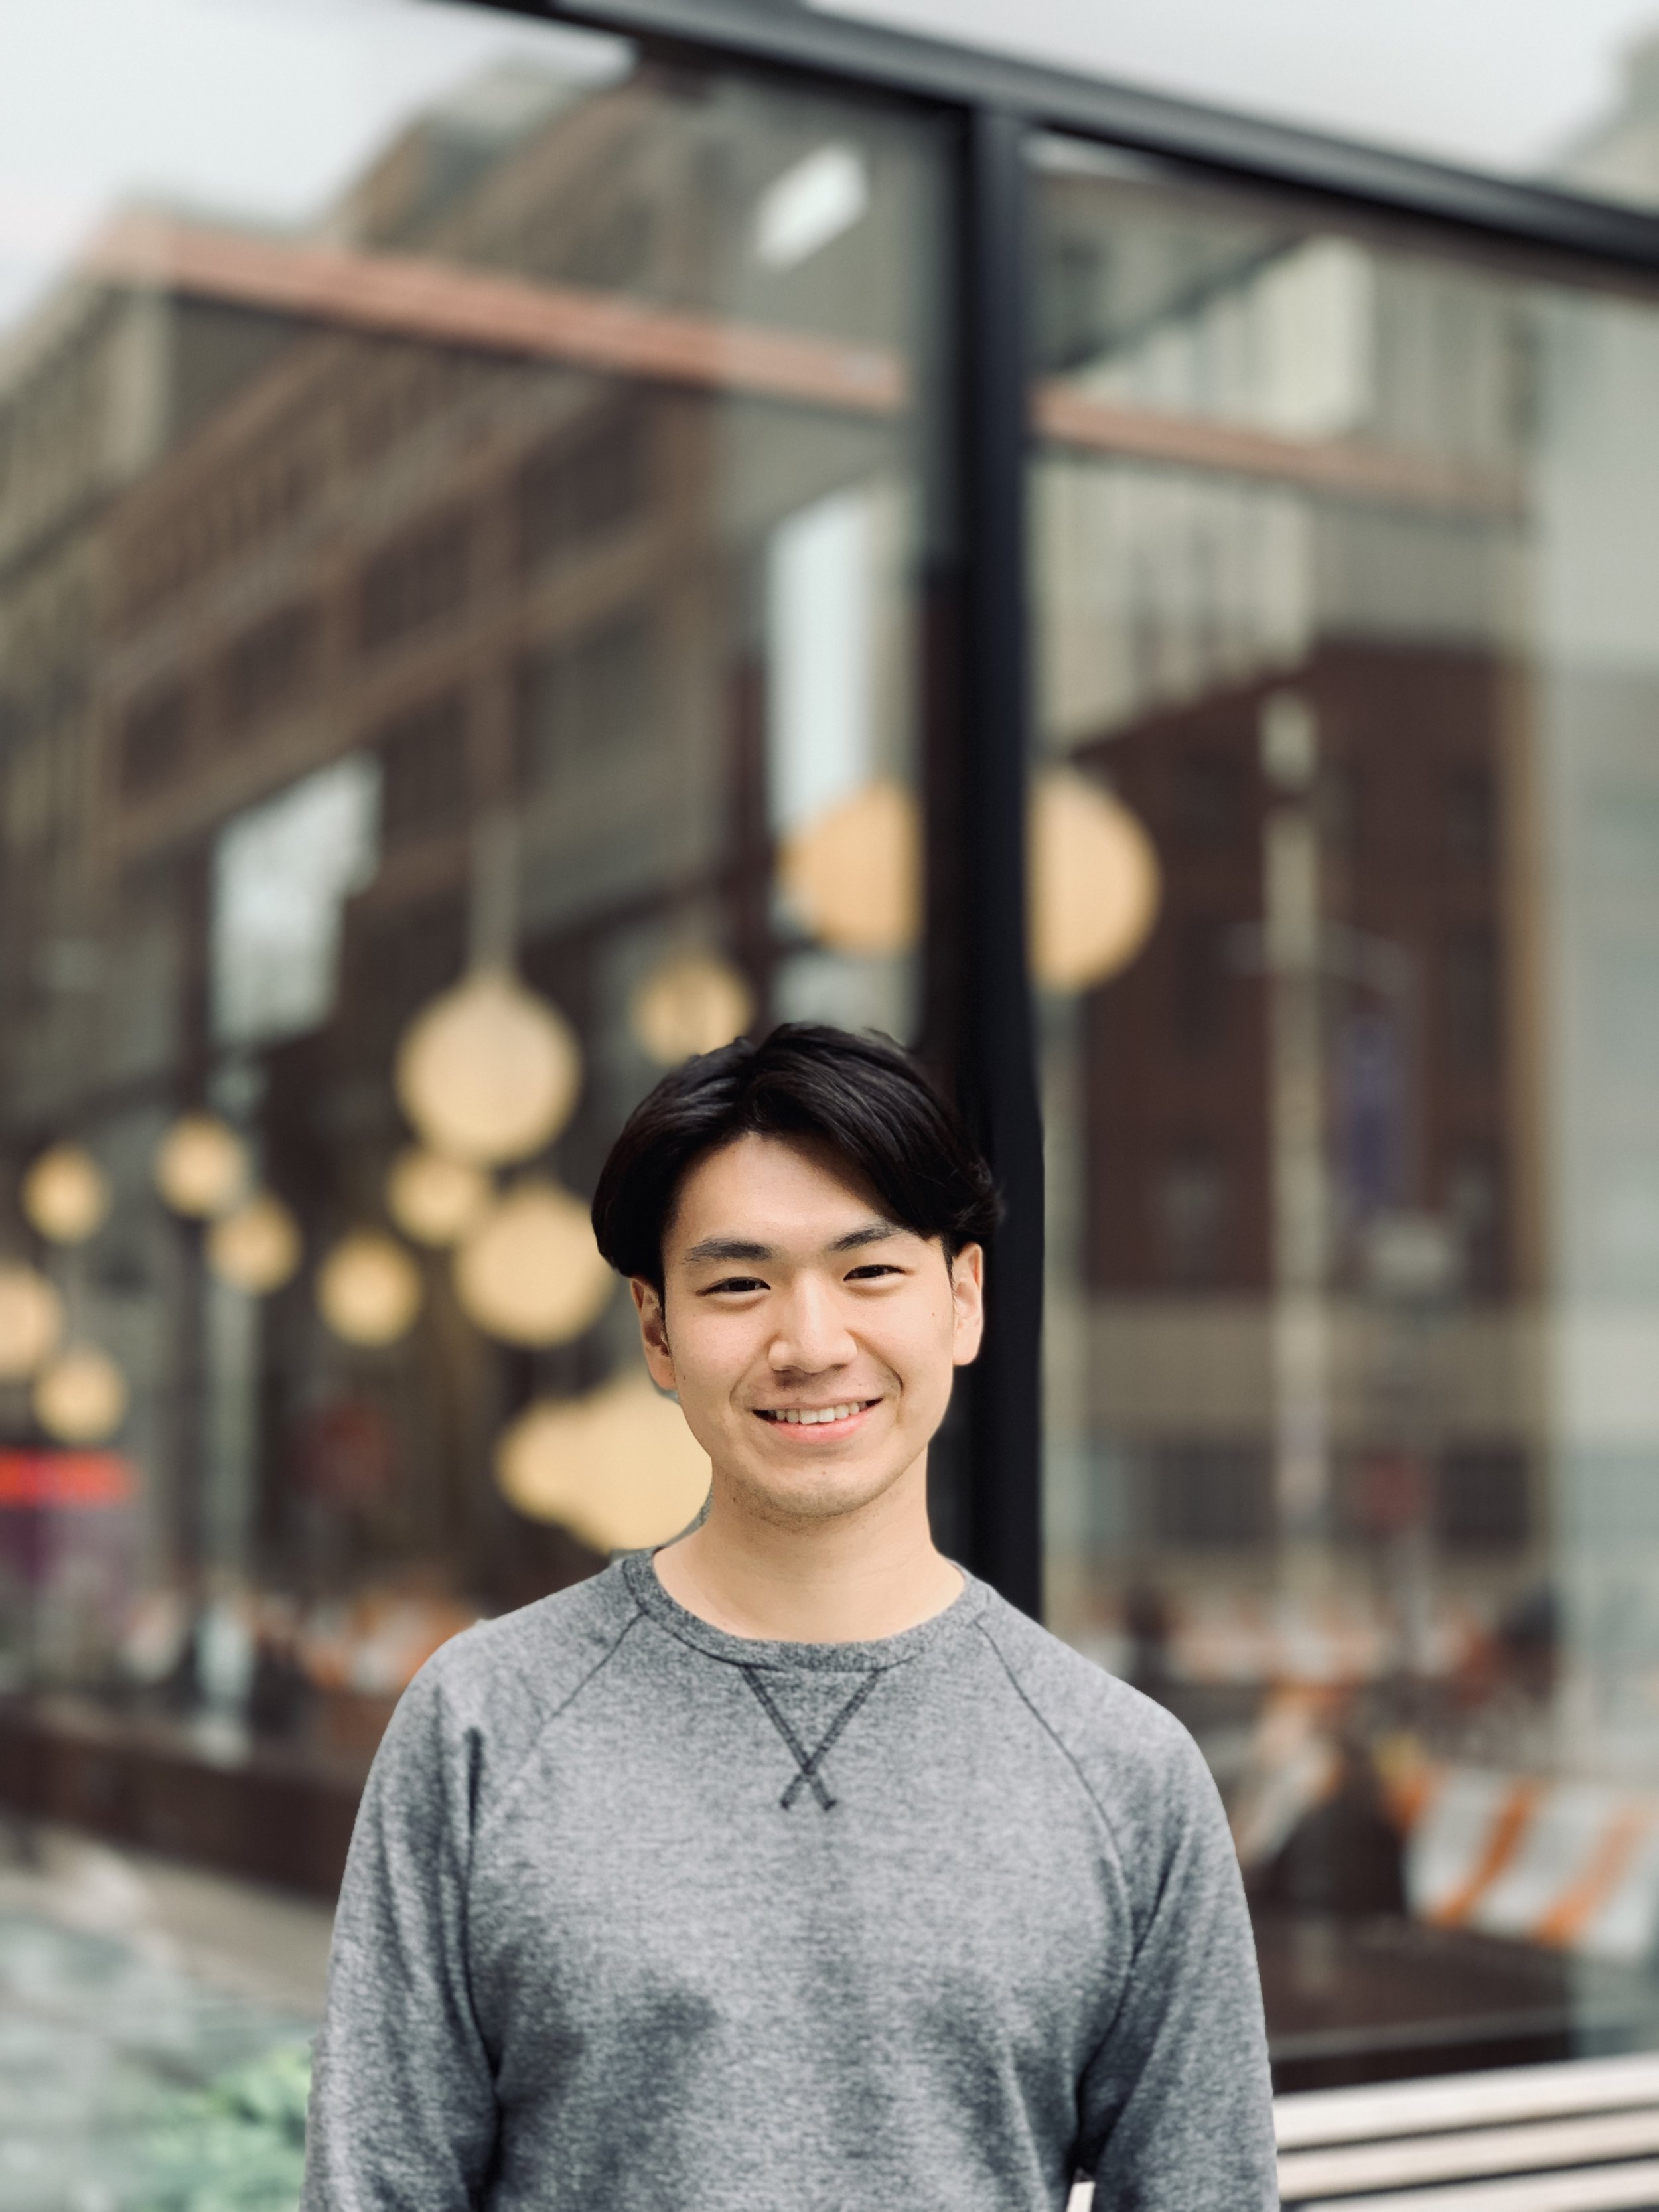 Maximilian Xue    Long Short Analyst   Max is from Sugar Land, Texas and is majoring in Finance and Economics with a minor in Management and Public Policy. He's an avid car enthusiast and enjoys biking around the city and cooking in his free time.